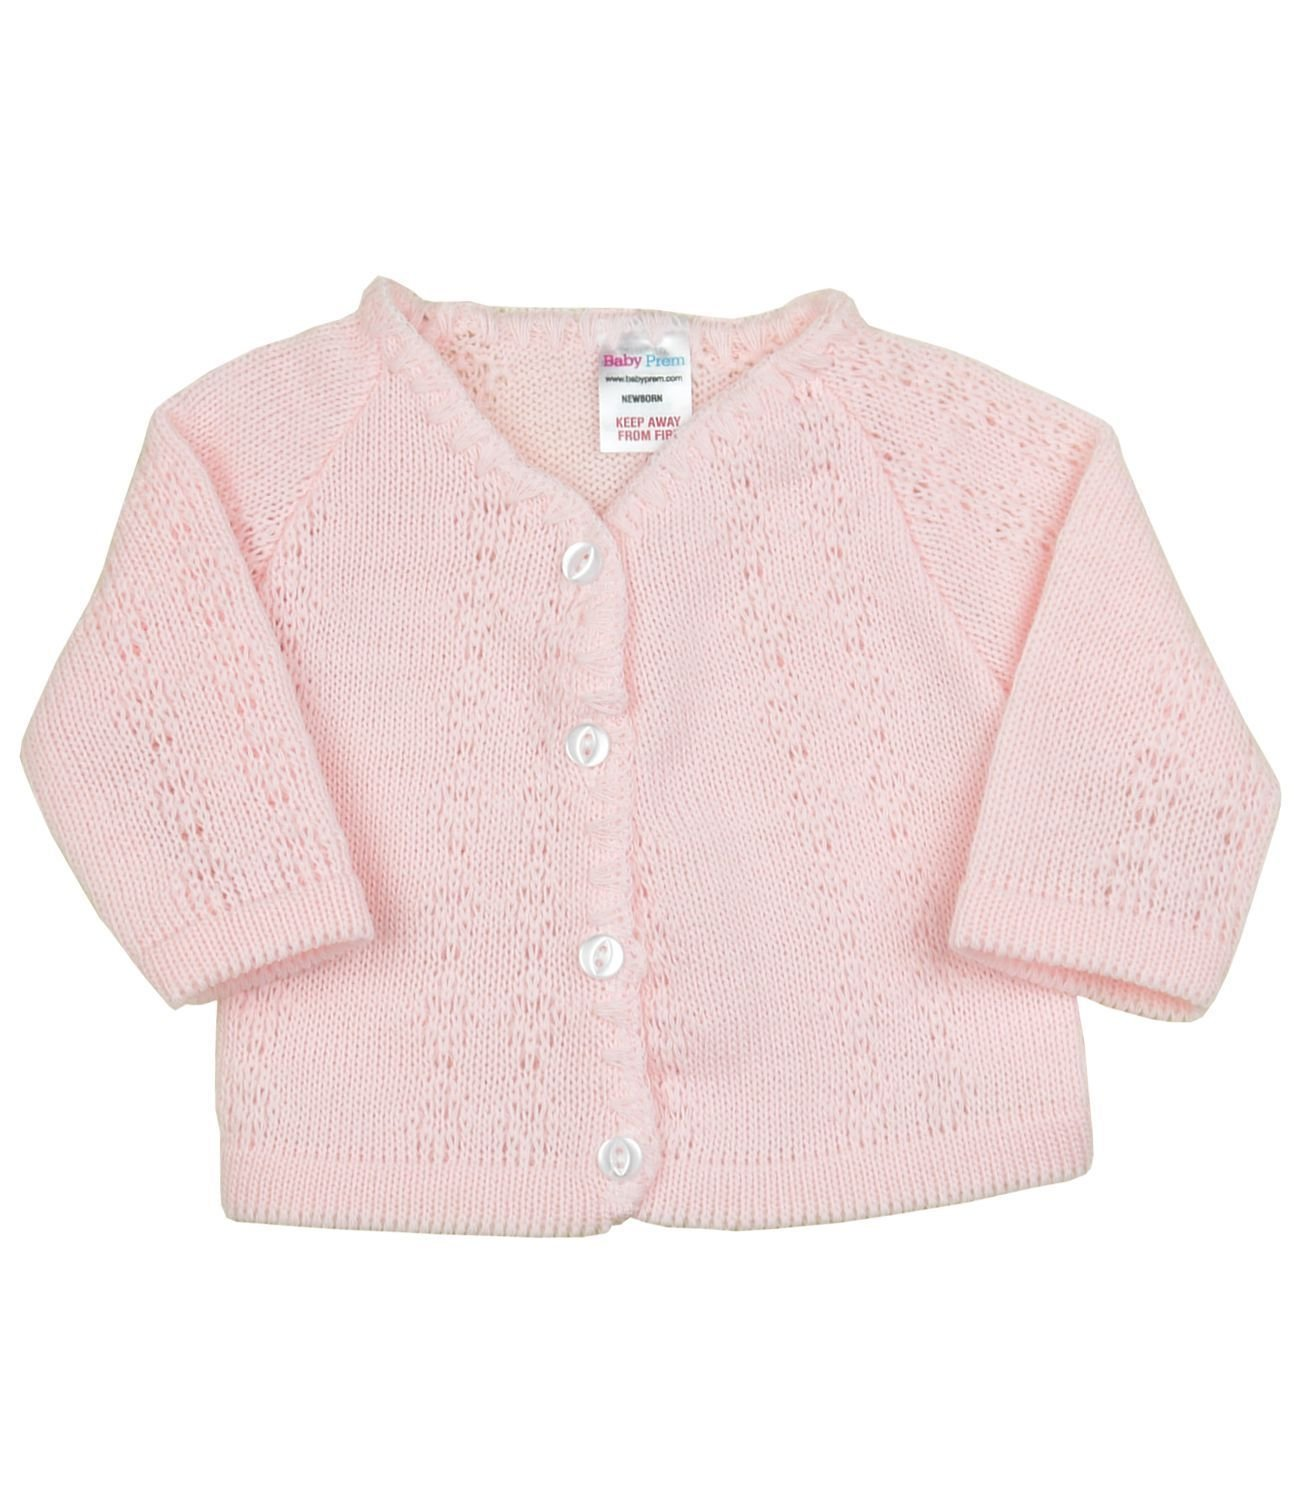 BabyPrem Baby Cardigan Jacket Boy Girl Buttons Soft Knitted Newborn - 3 Months BEE026